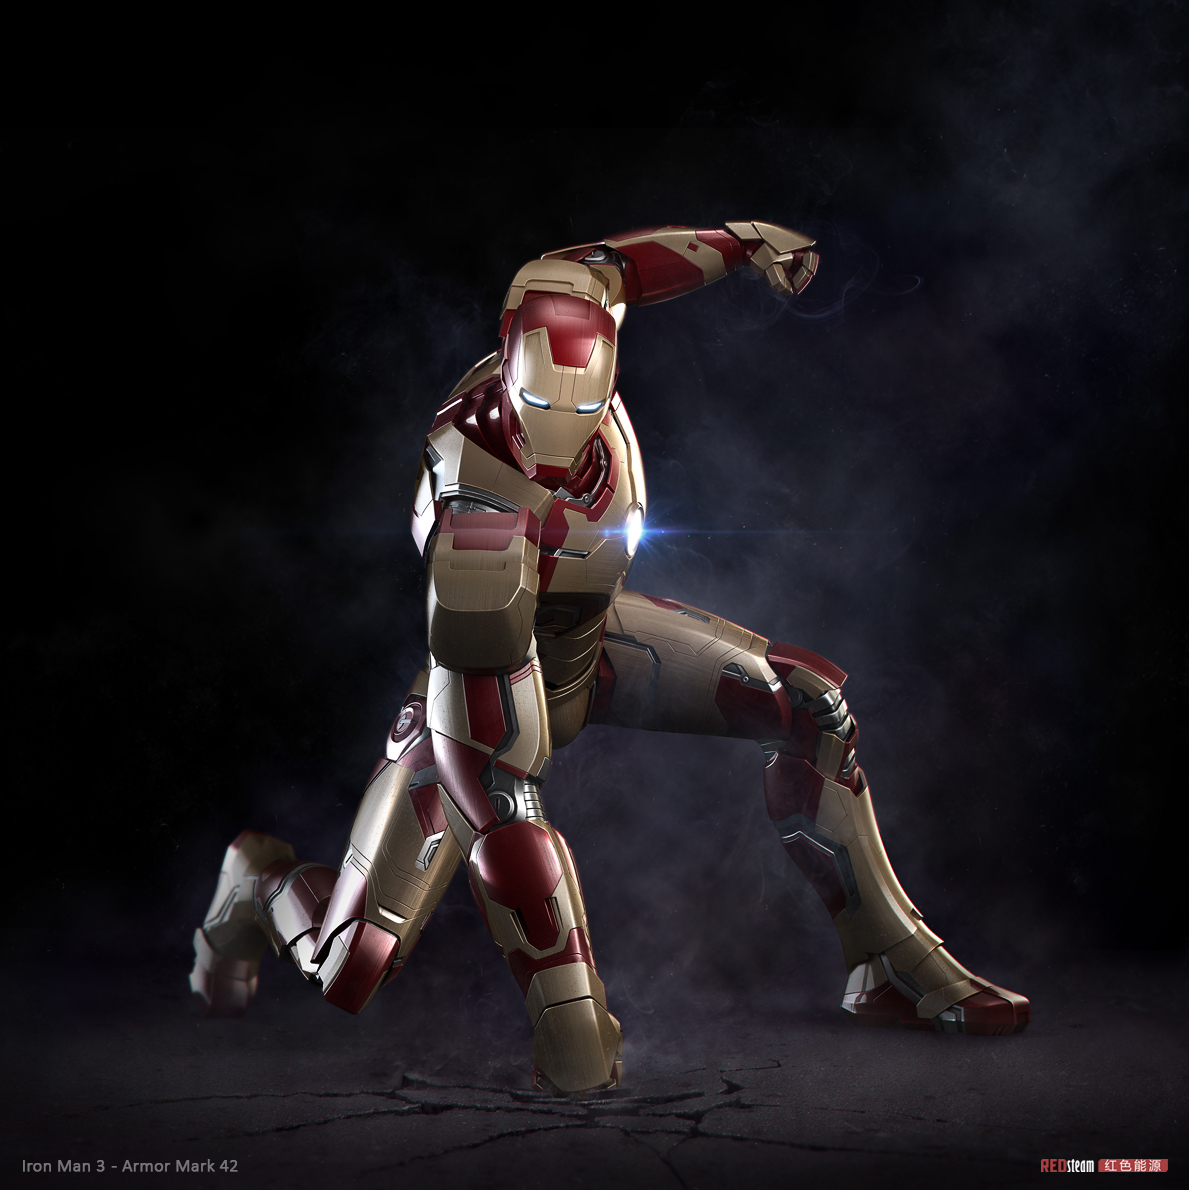 5K'3D: Iron Man 3 - armor Mark 42